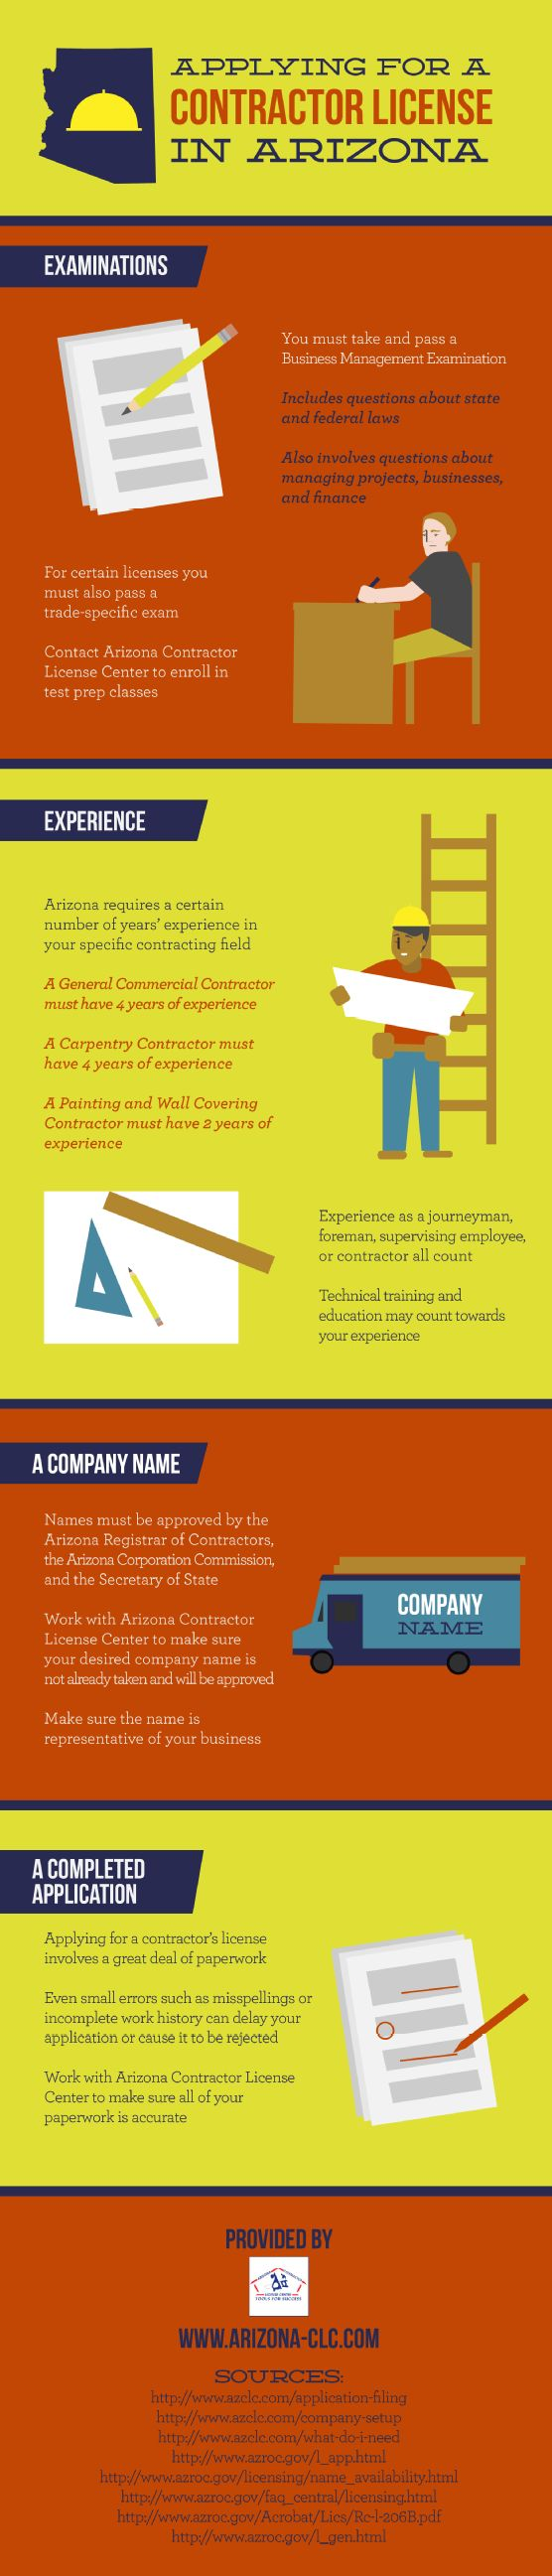 Applying for a Contractor License in Arizona   #Infographic #ContractorLicense #Arizona